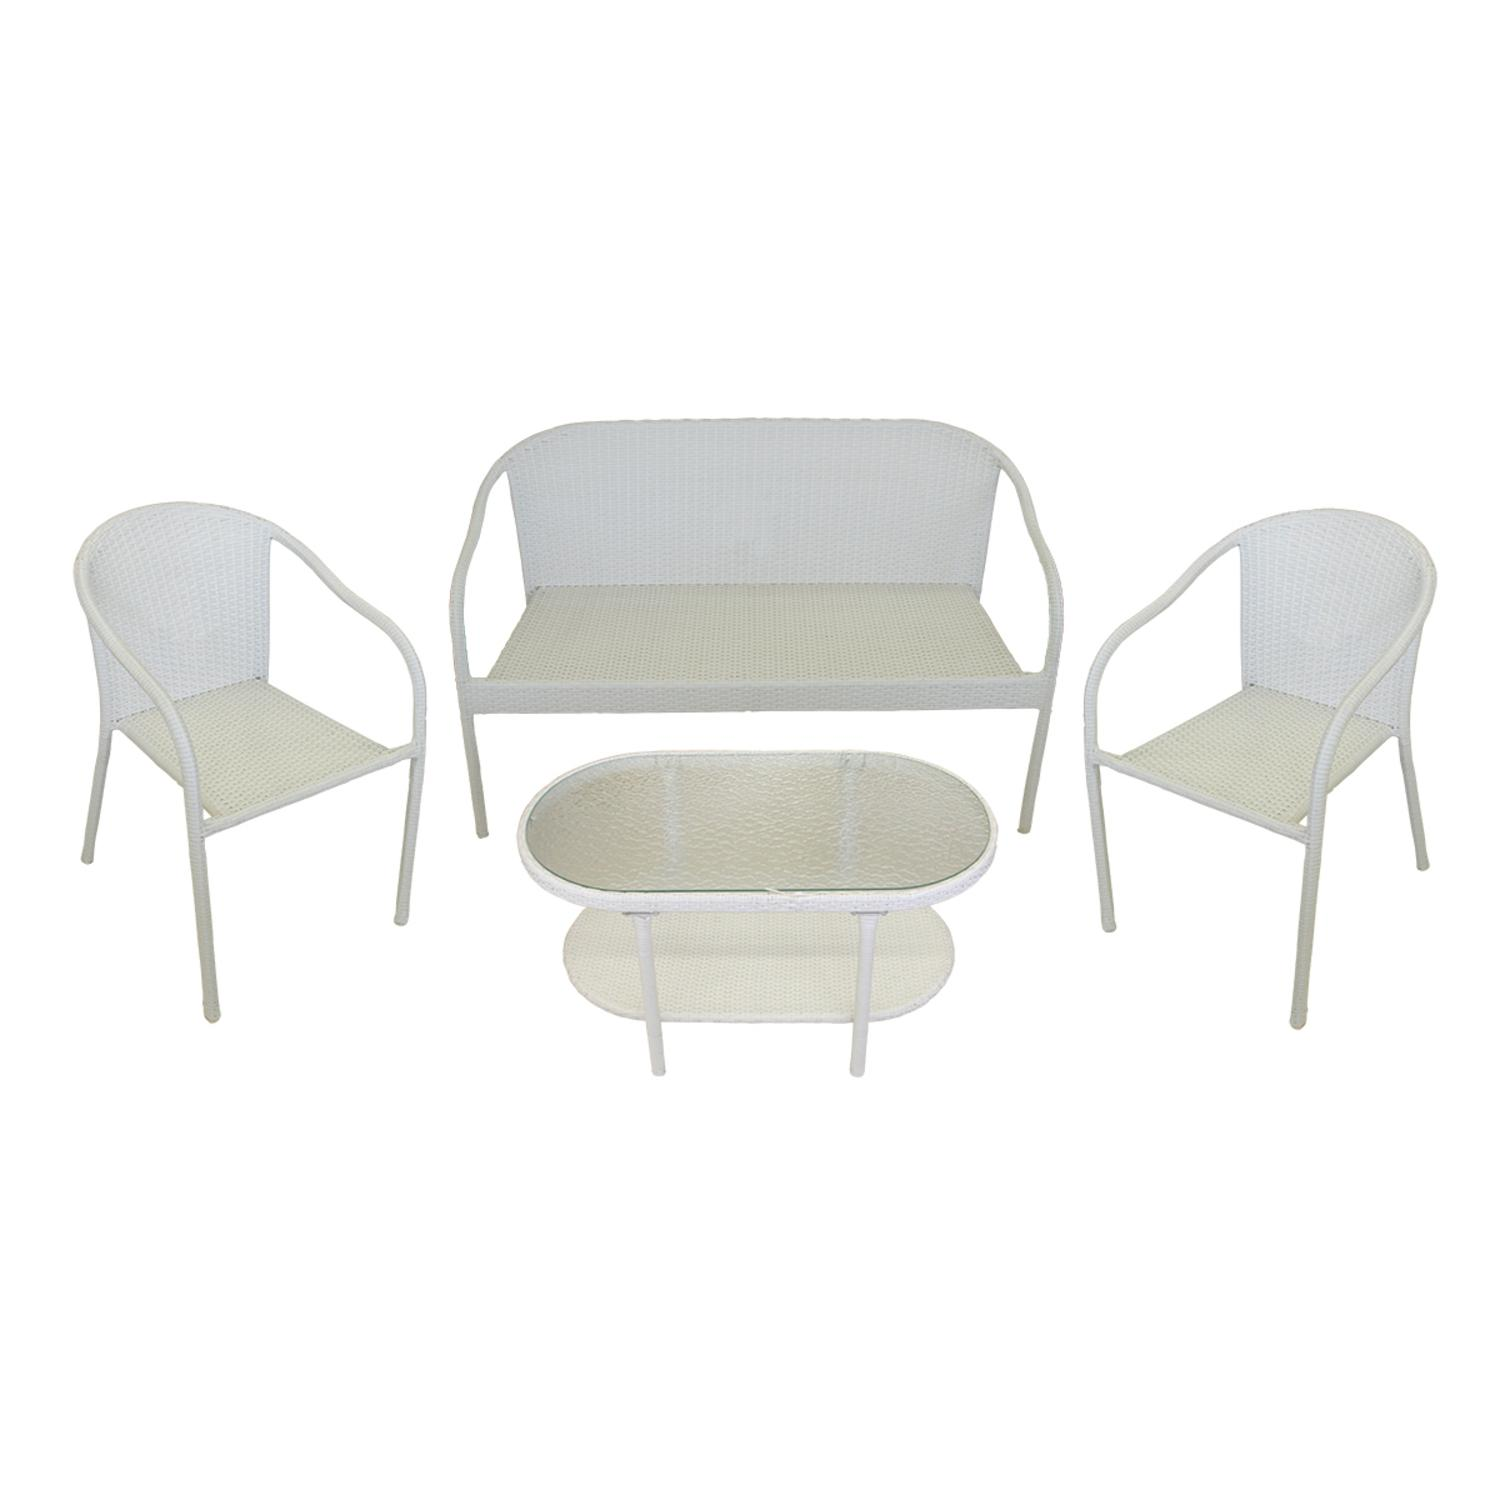 4 Piece White Resin Wicker Patio Furniture Set 2 Chairs Loveseat